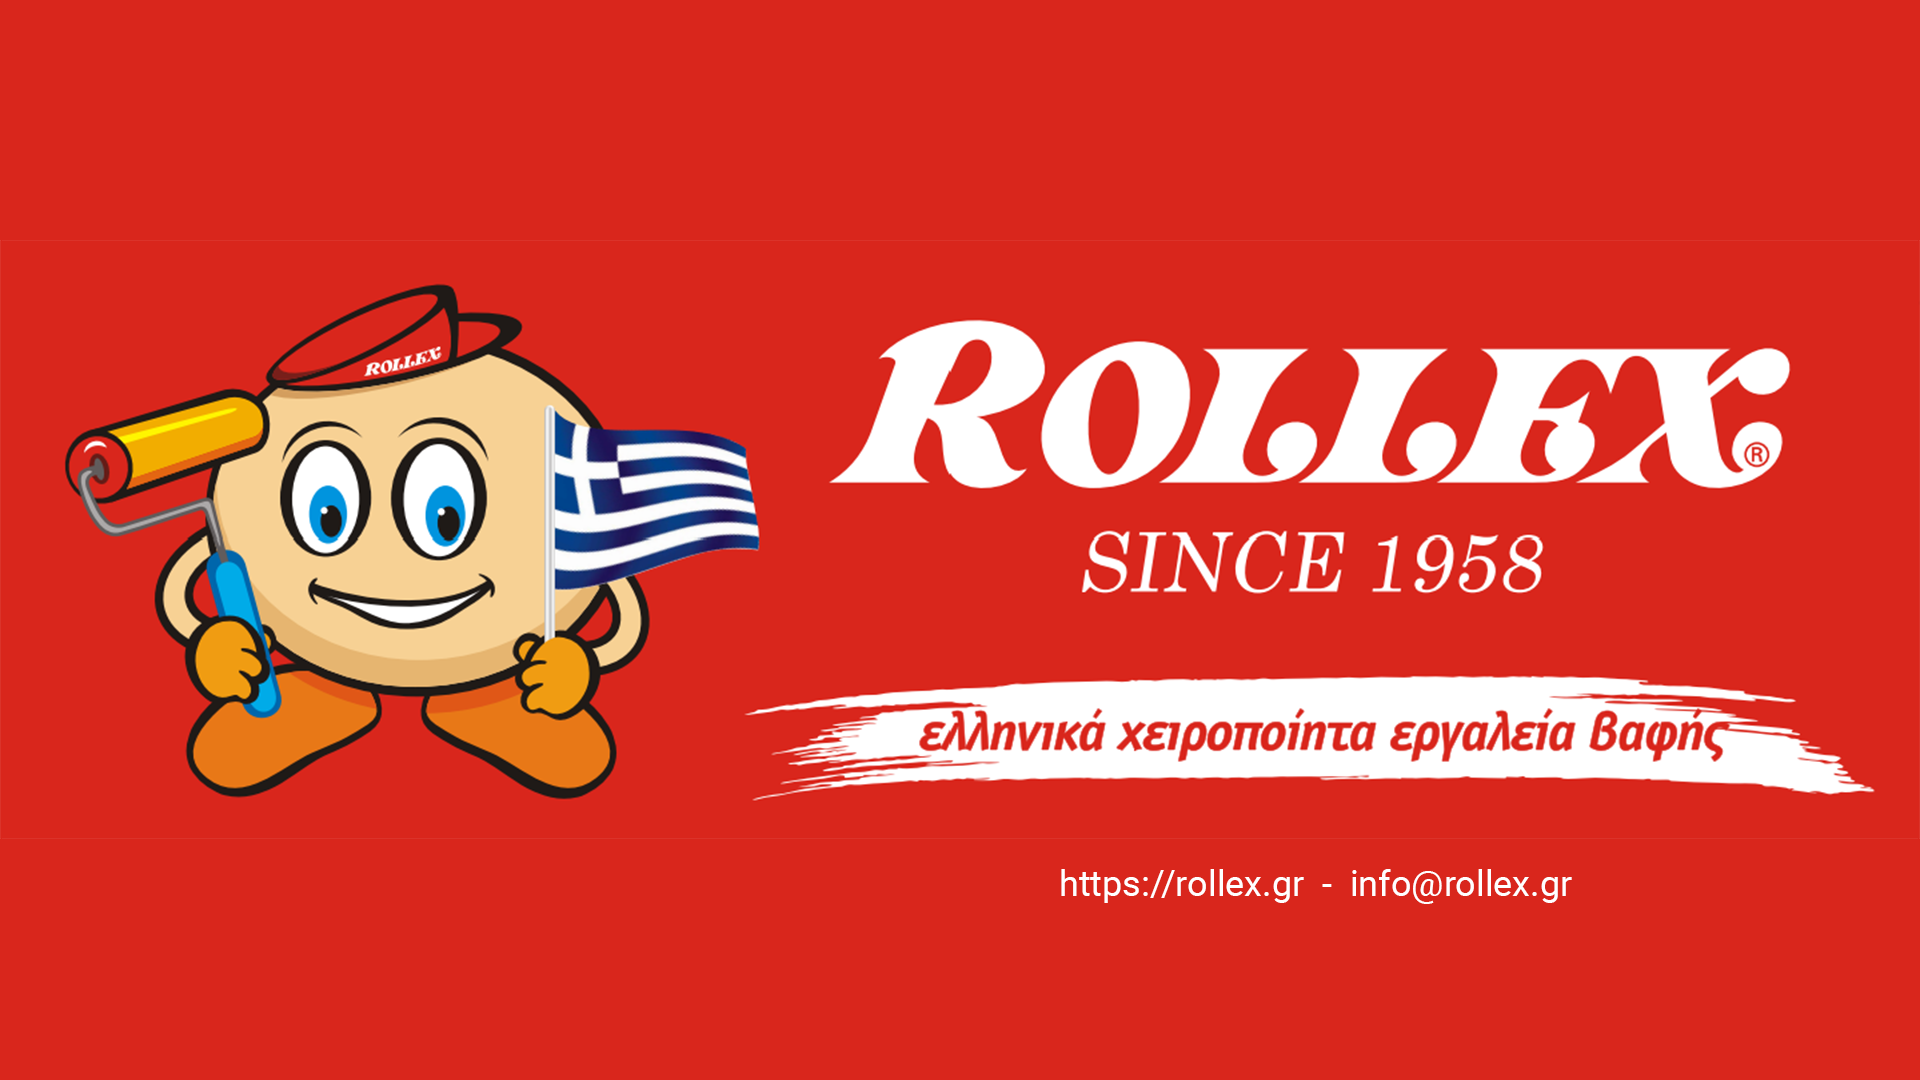 ROLLEX - Paint rollers, paint brushes and painting tools